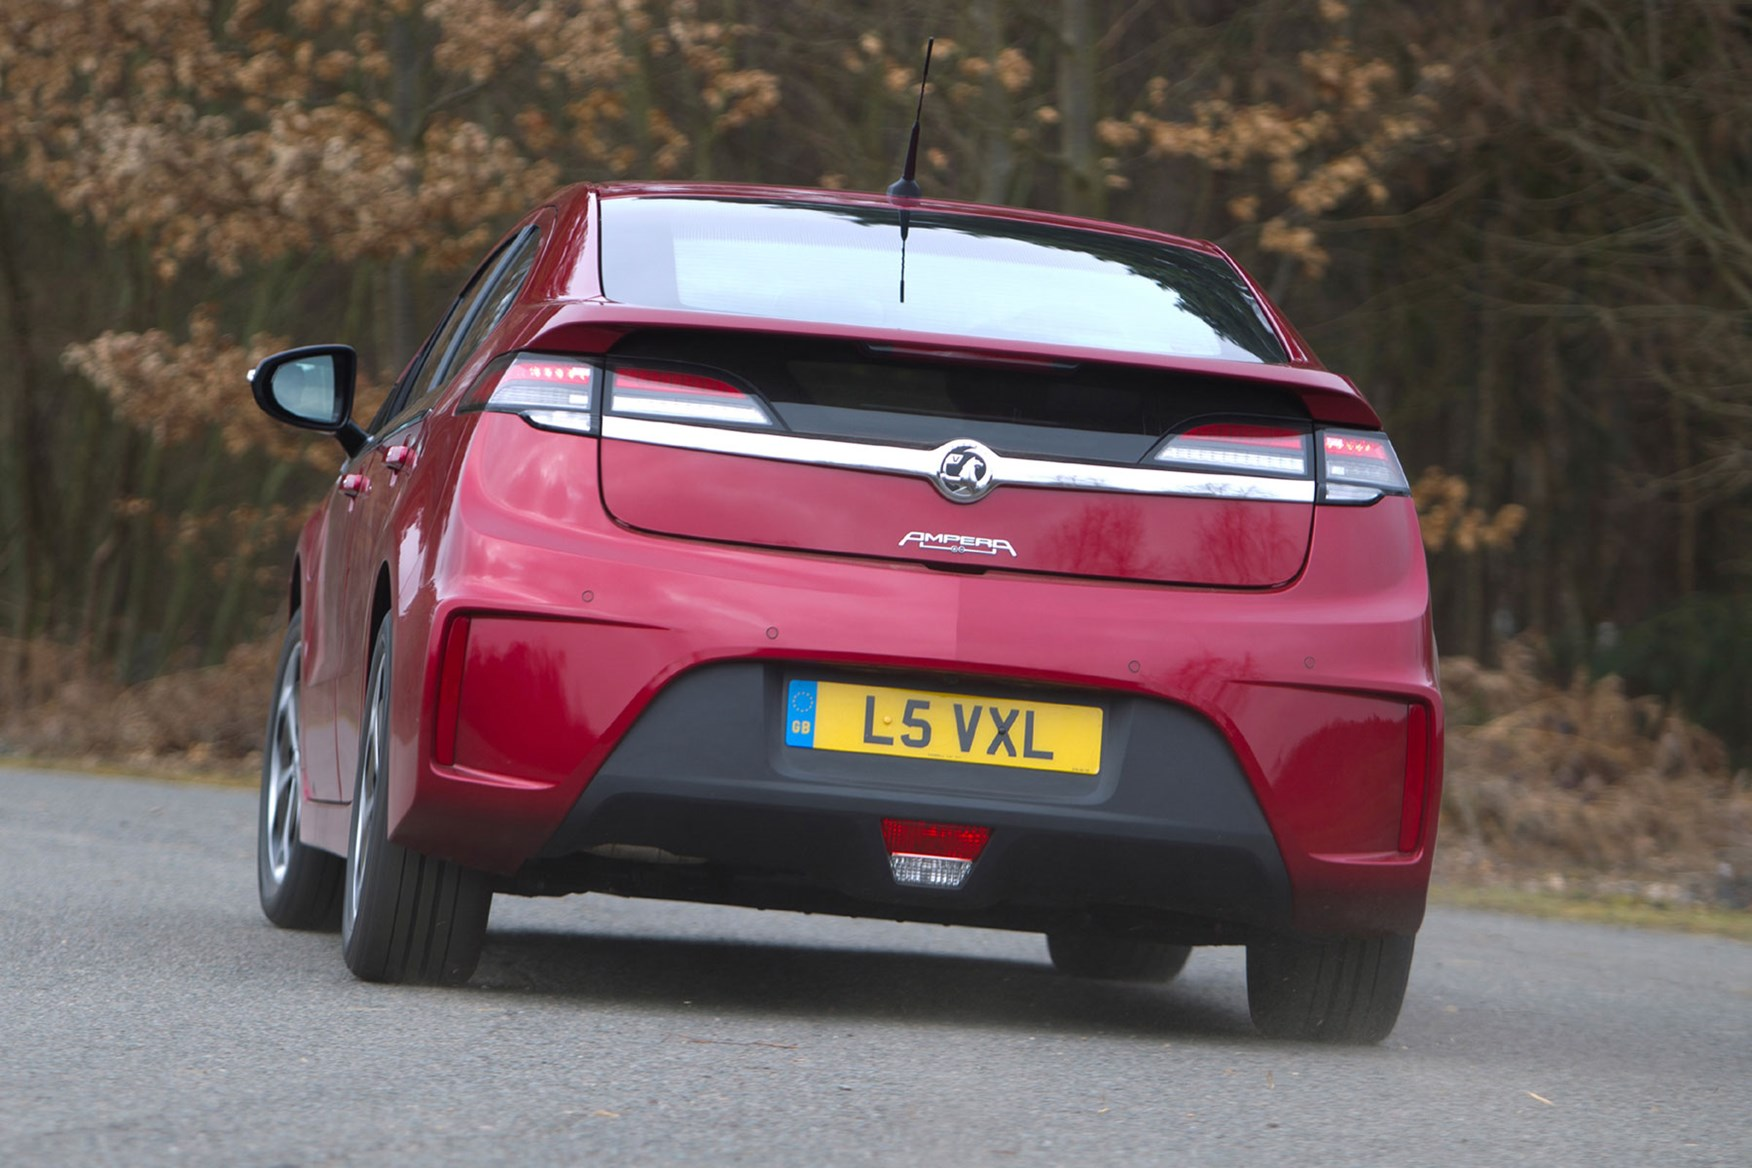 2014 Vauxhall Ampera driving, rear view, red